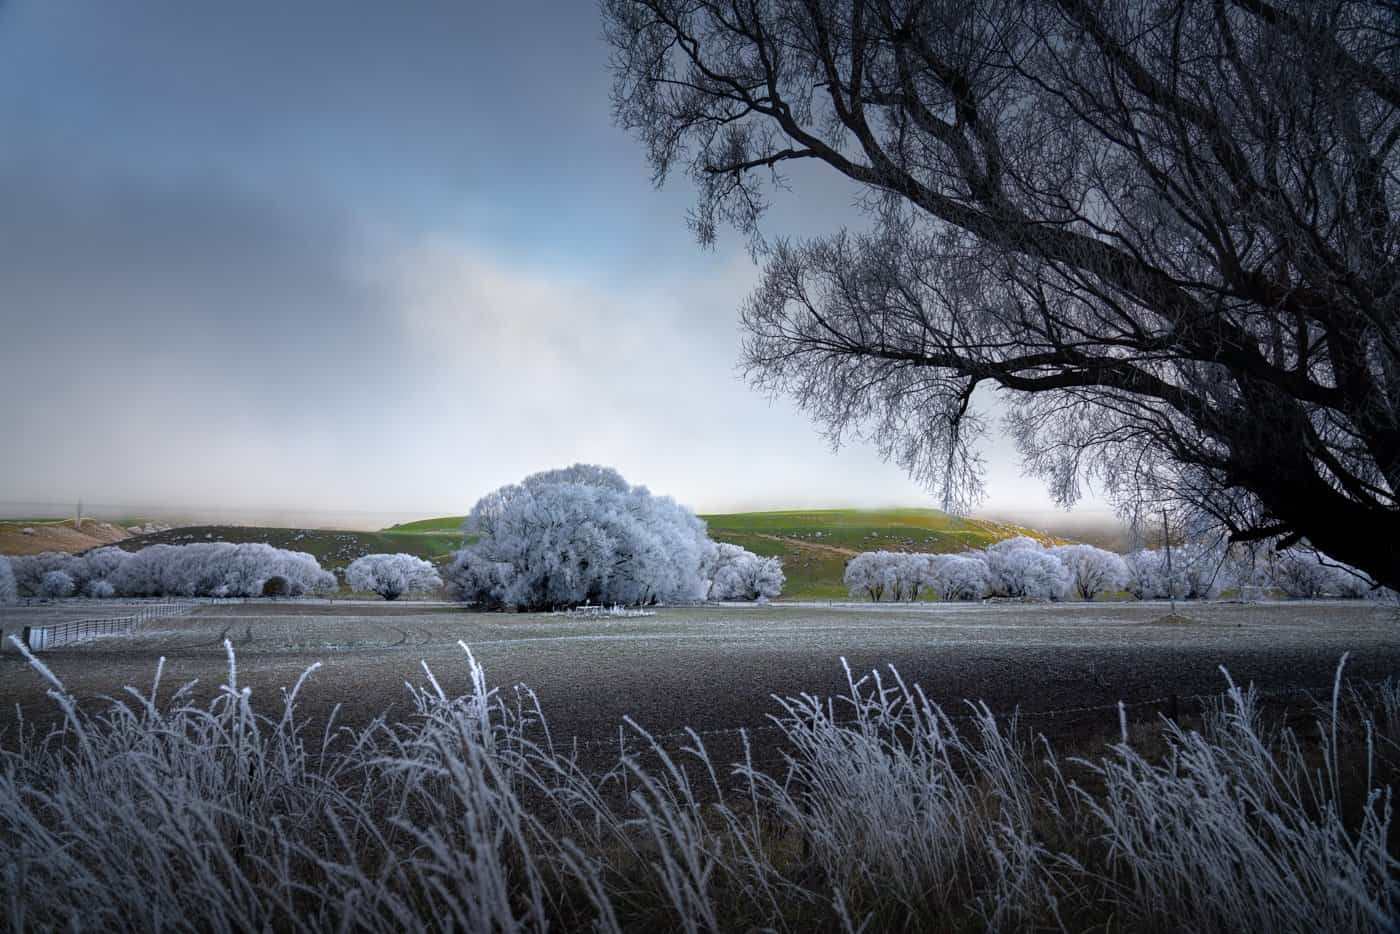 Stopping for a frosty morning photo on the drive from Queenstown to Milford Sound.